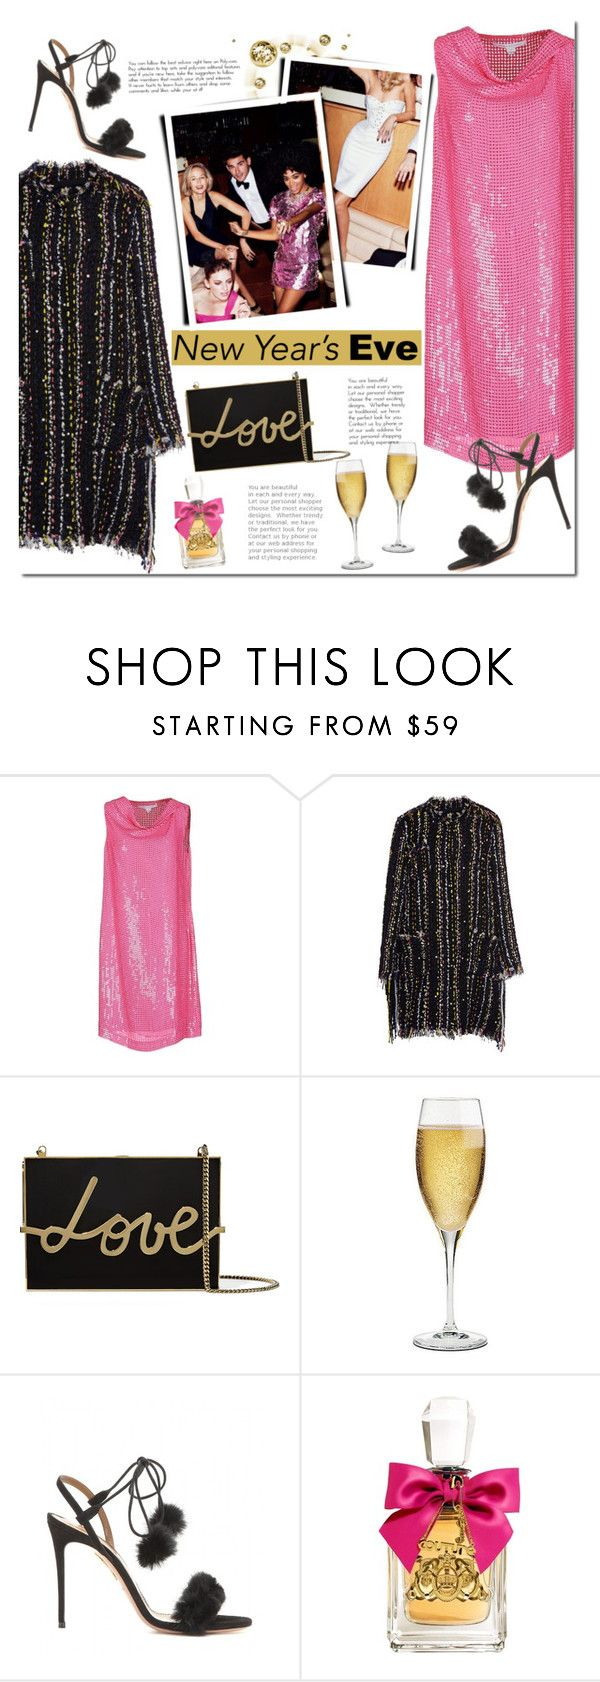 """""""NYE Dance Party"""" by mada-malureanu ❤ liked on Polyvore featuring Diane Von Furstenberg, MSGM, Lanvin, Riedel, Aquazzura, Juicy Couture, dress, polyvoreeditorial and nyestyle"""